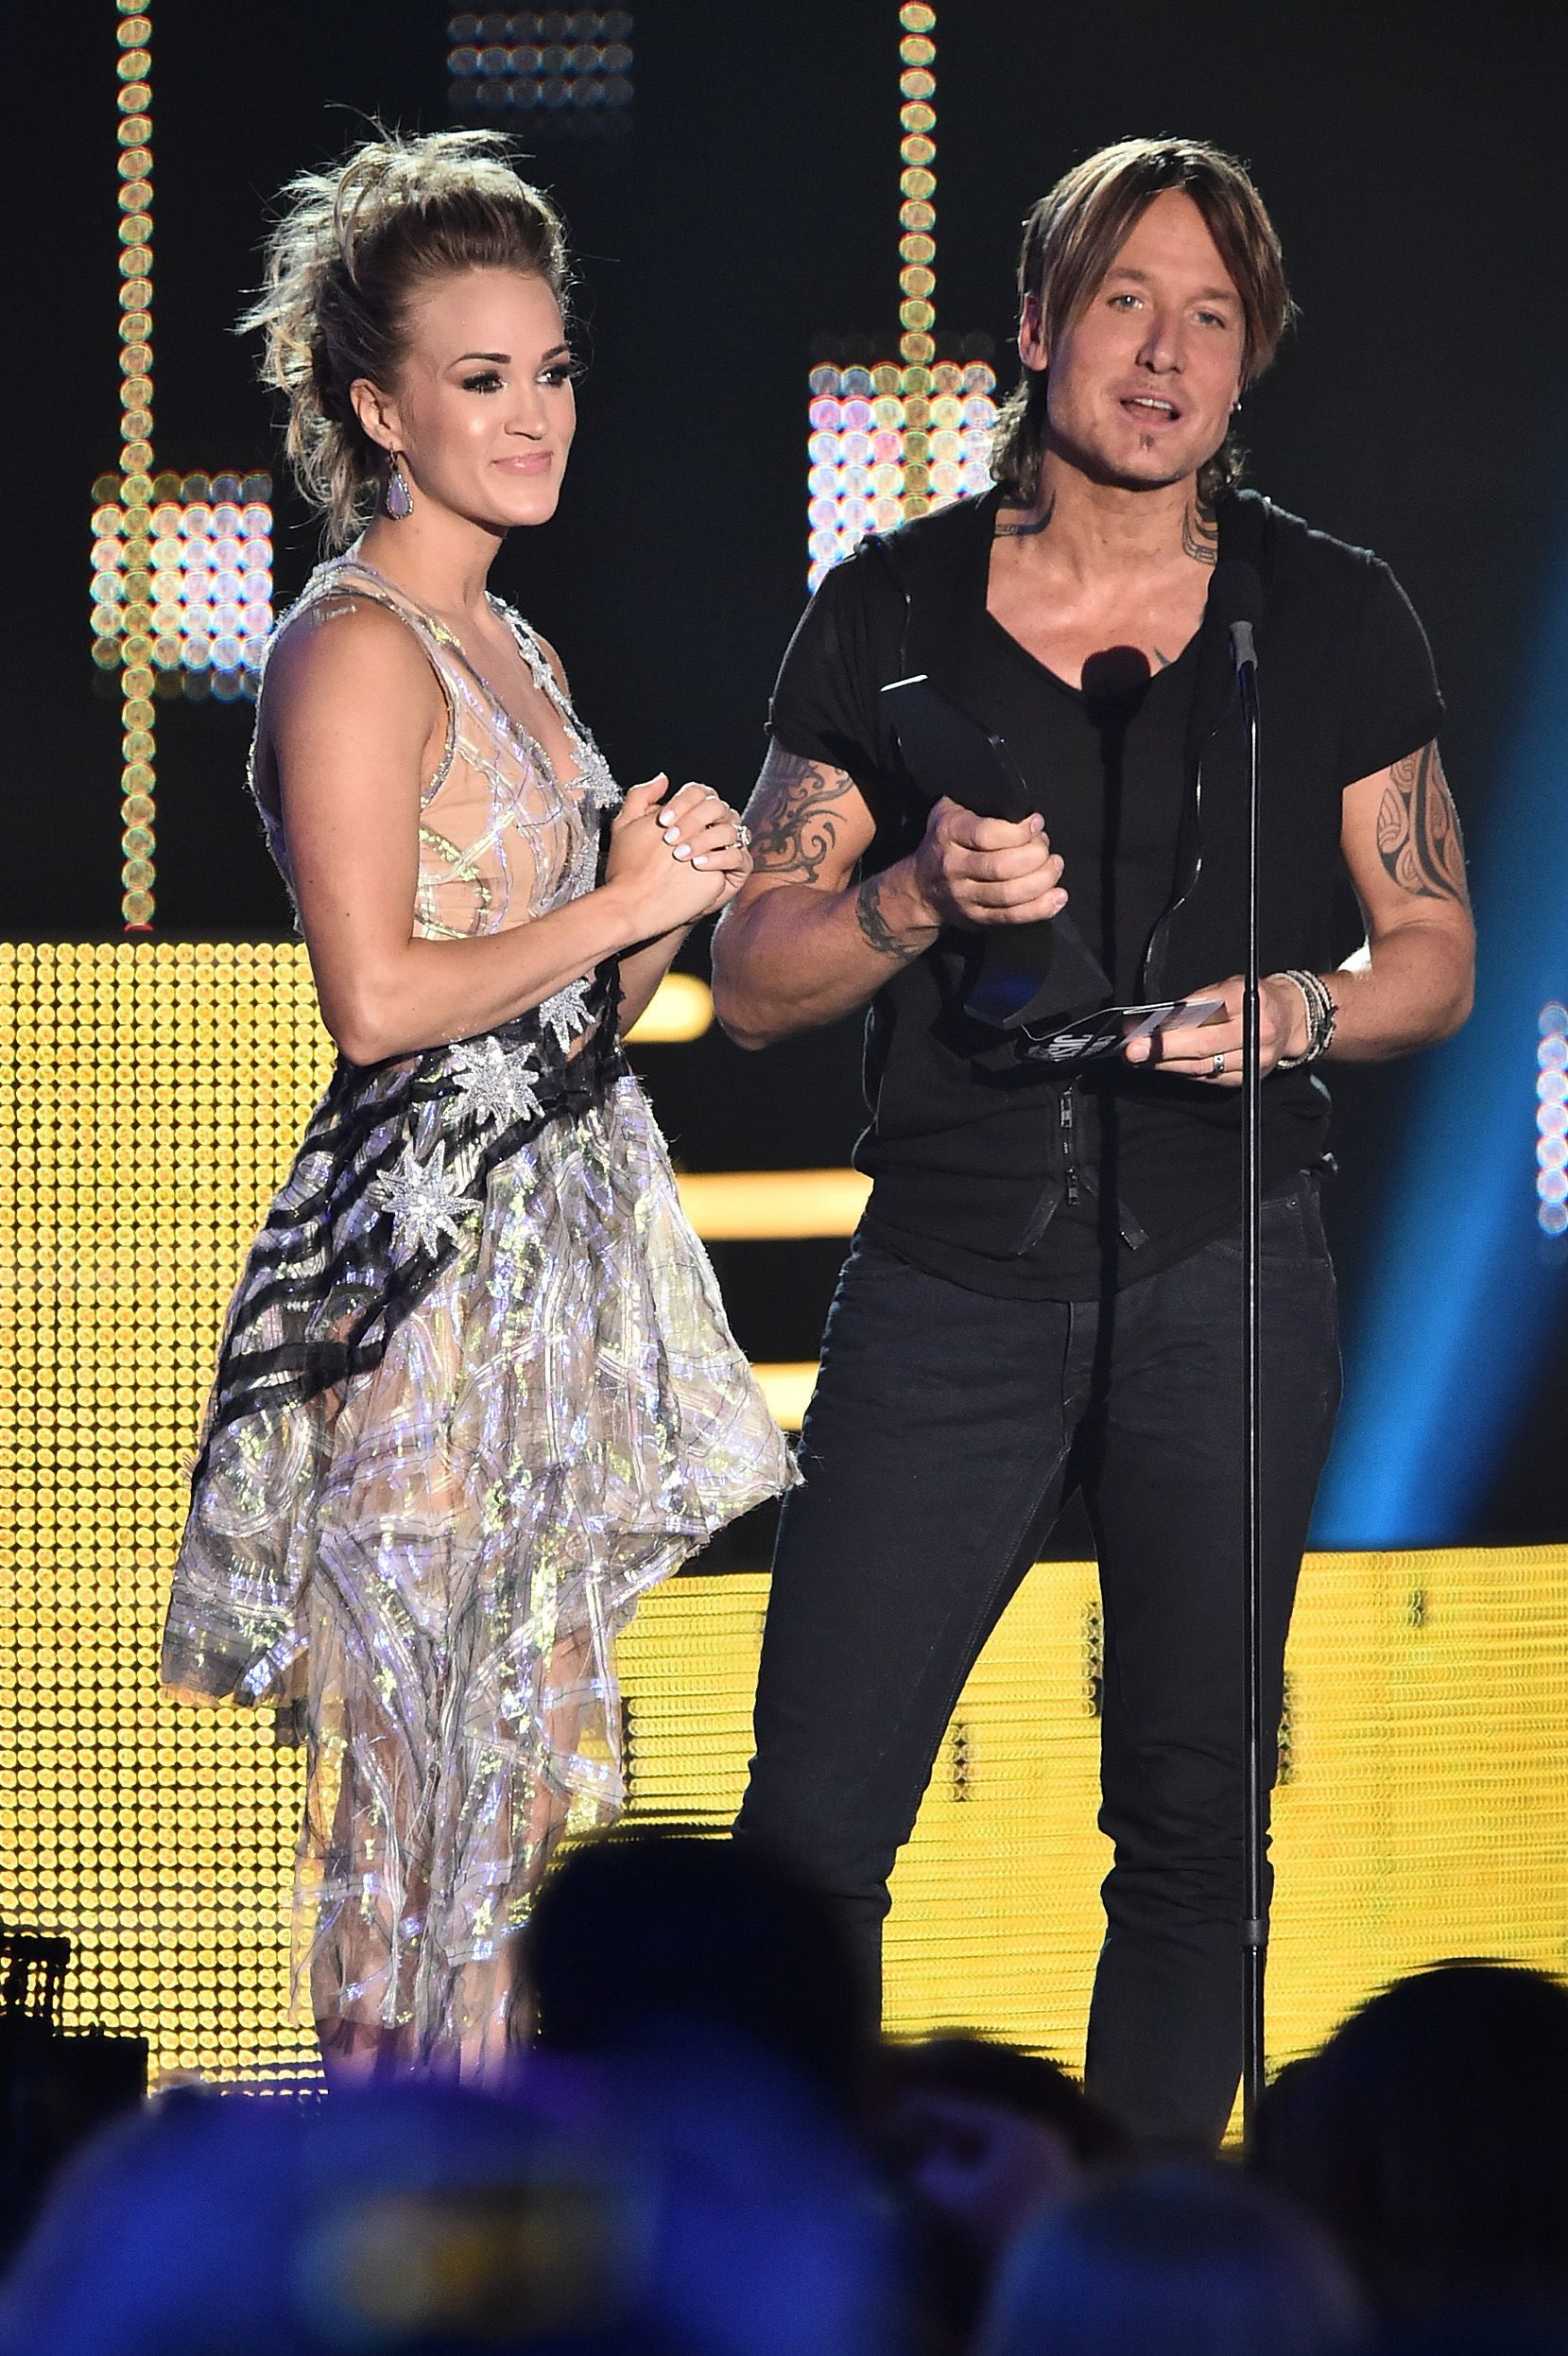 Carrie Underwood And Keith Urban Accept Award For Collaborative Video Of The Year Onstage During The 2017 Cmt Musi Cmt Music Awards Kanye West Kanye West Songs